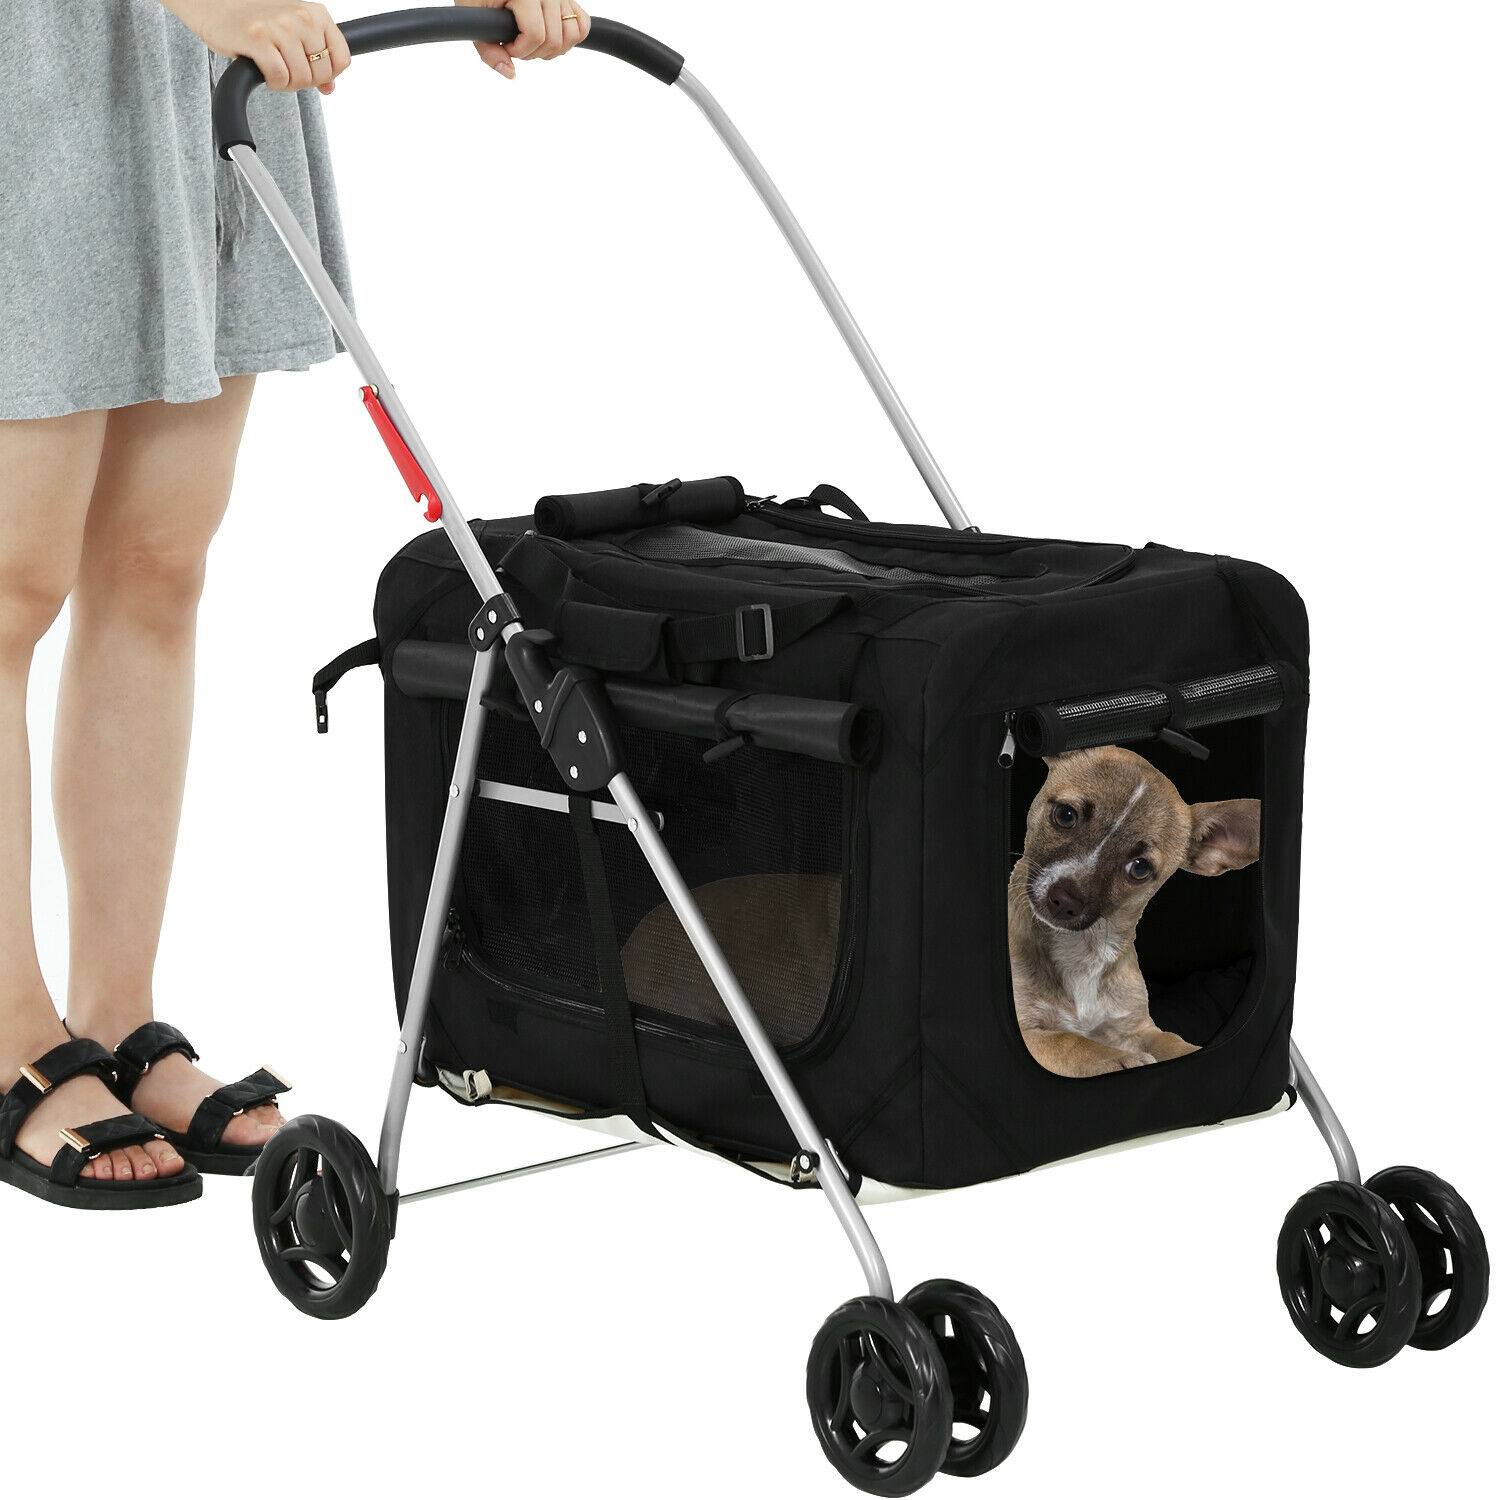 Dog Stroller Cat Stroller Pet Carriers Bag for Small Medium Dogs Cats Travel Dog Supplies